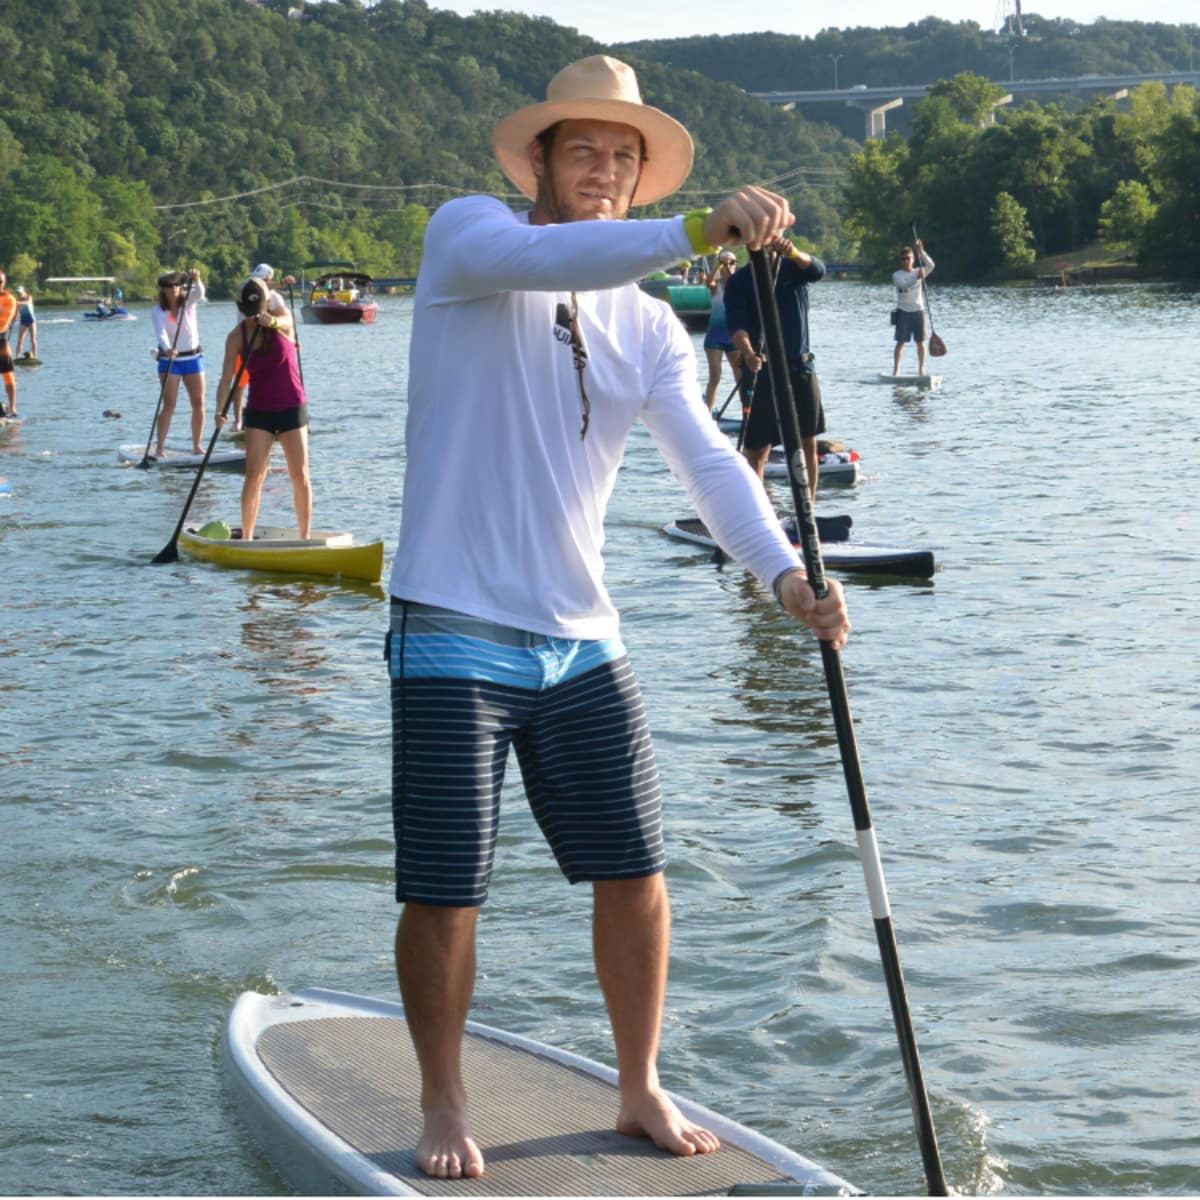 Tyler's Dam That Cancer_Flatwater Foundation_stand up paddle boarding_Lake Austin_Alex Earle_2015